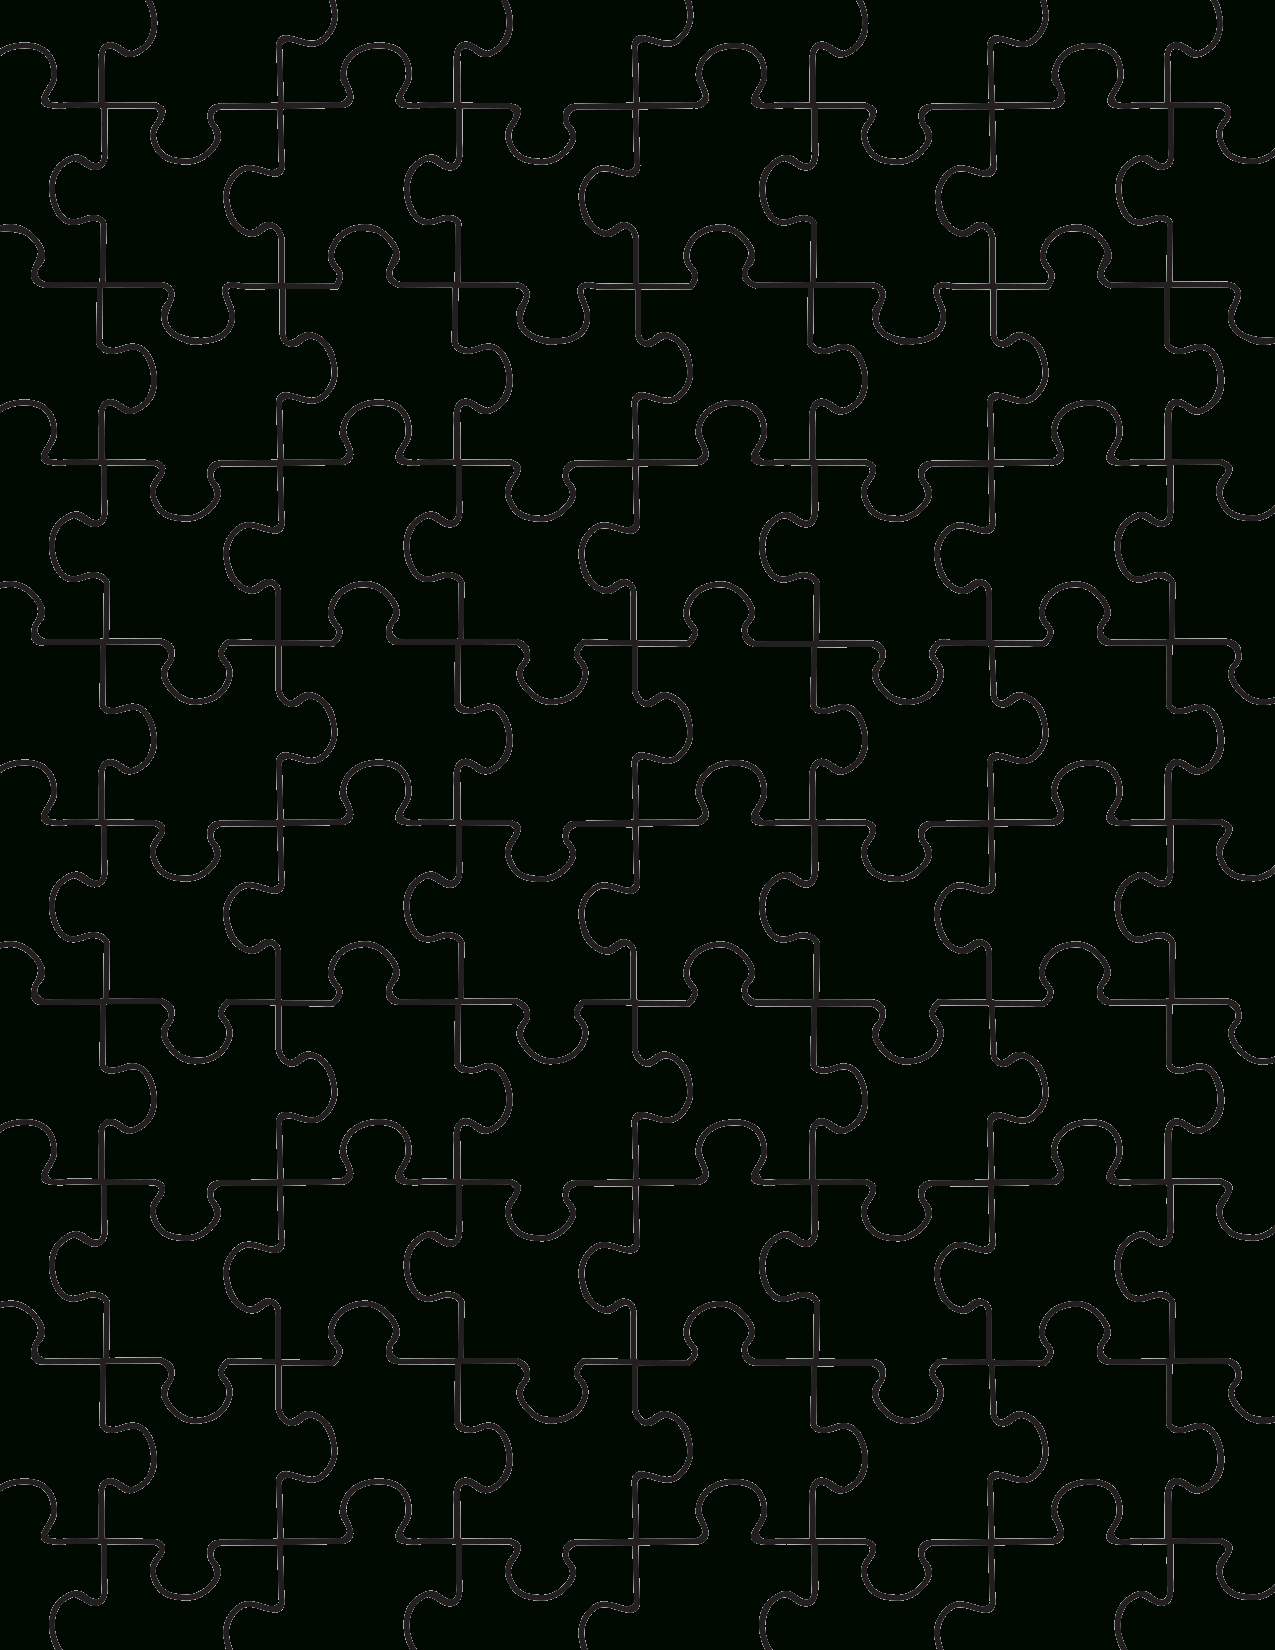 Free Puzzle Pieces Template, Download Free Clip Art, Free Clip Art - Printable Jigsaw Puzzle Template